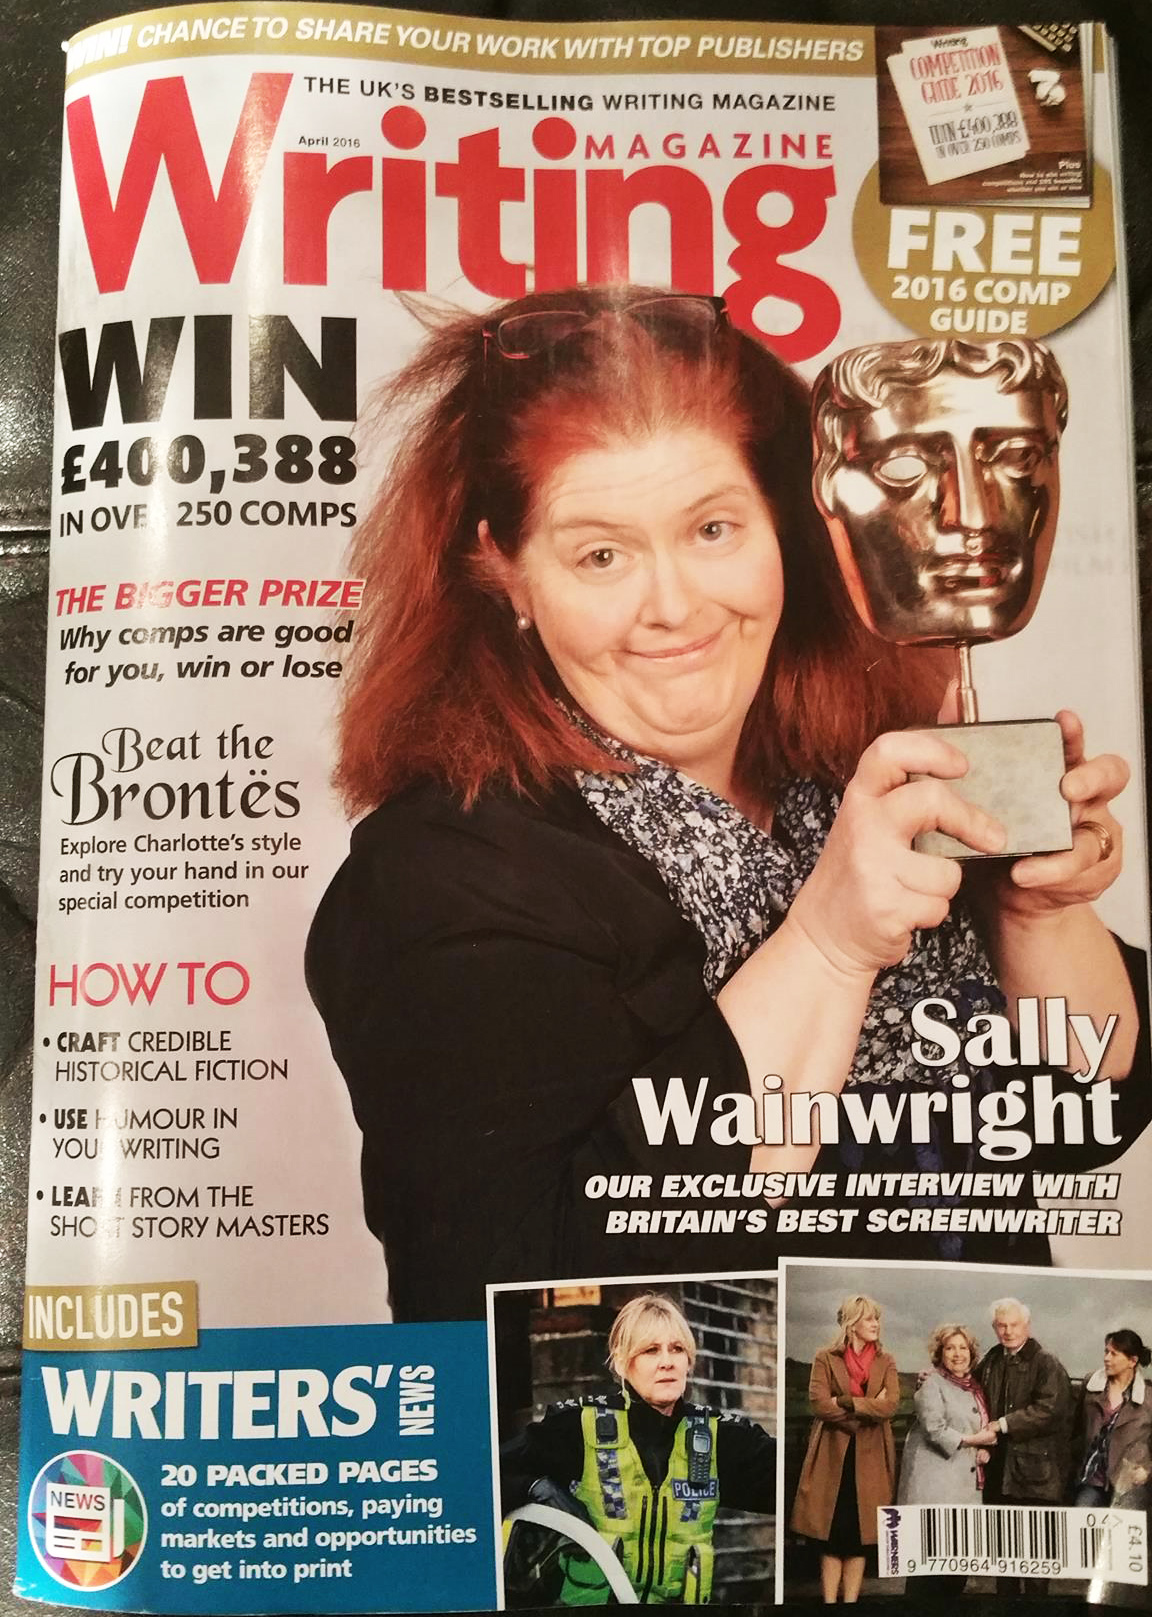 Writing Magazine April 2016.jpg